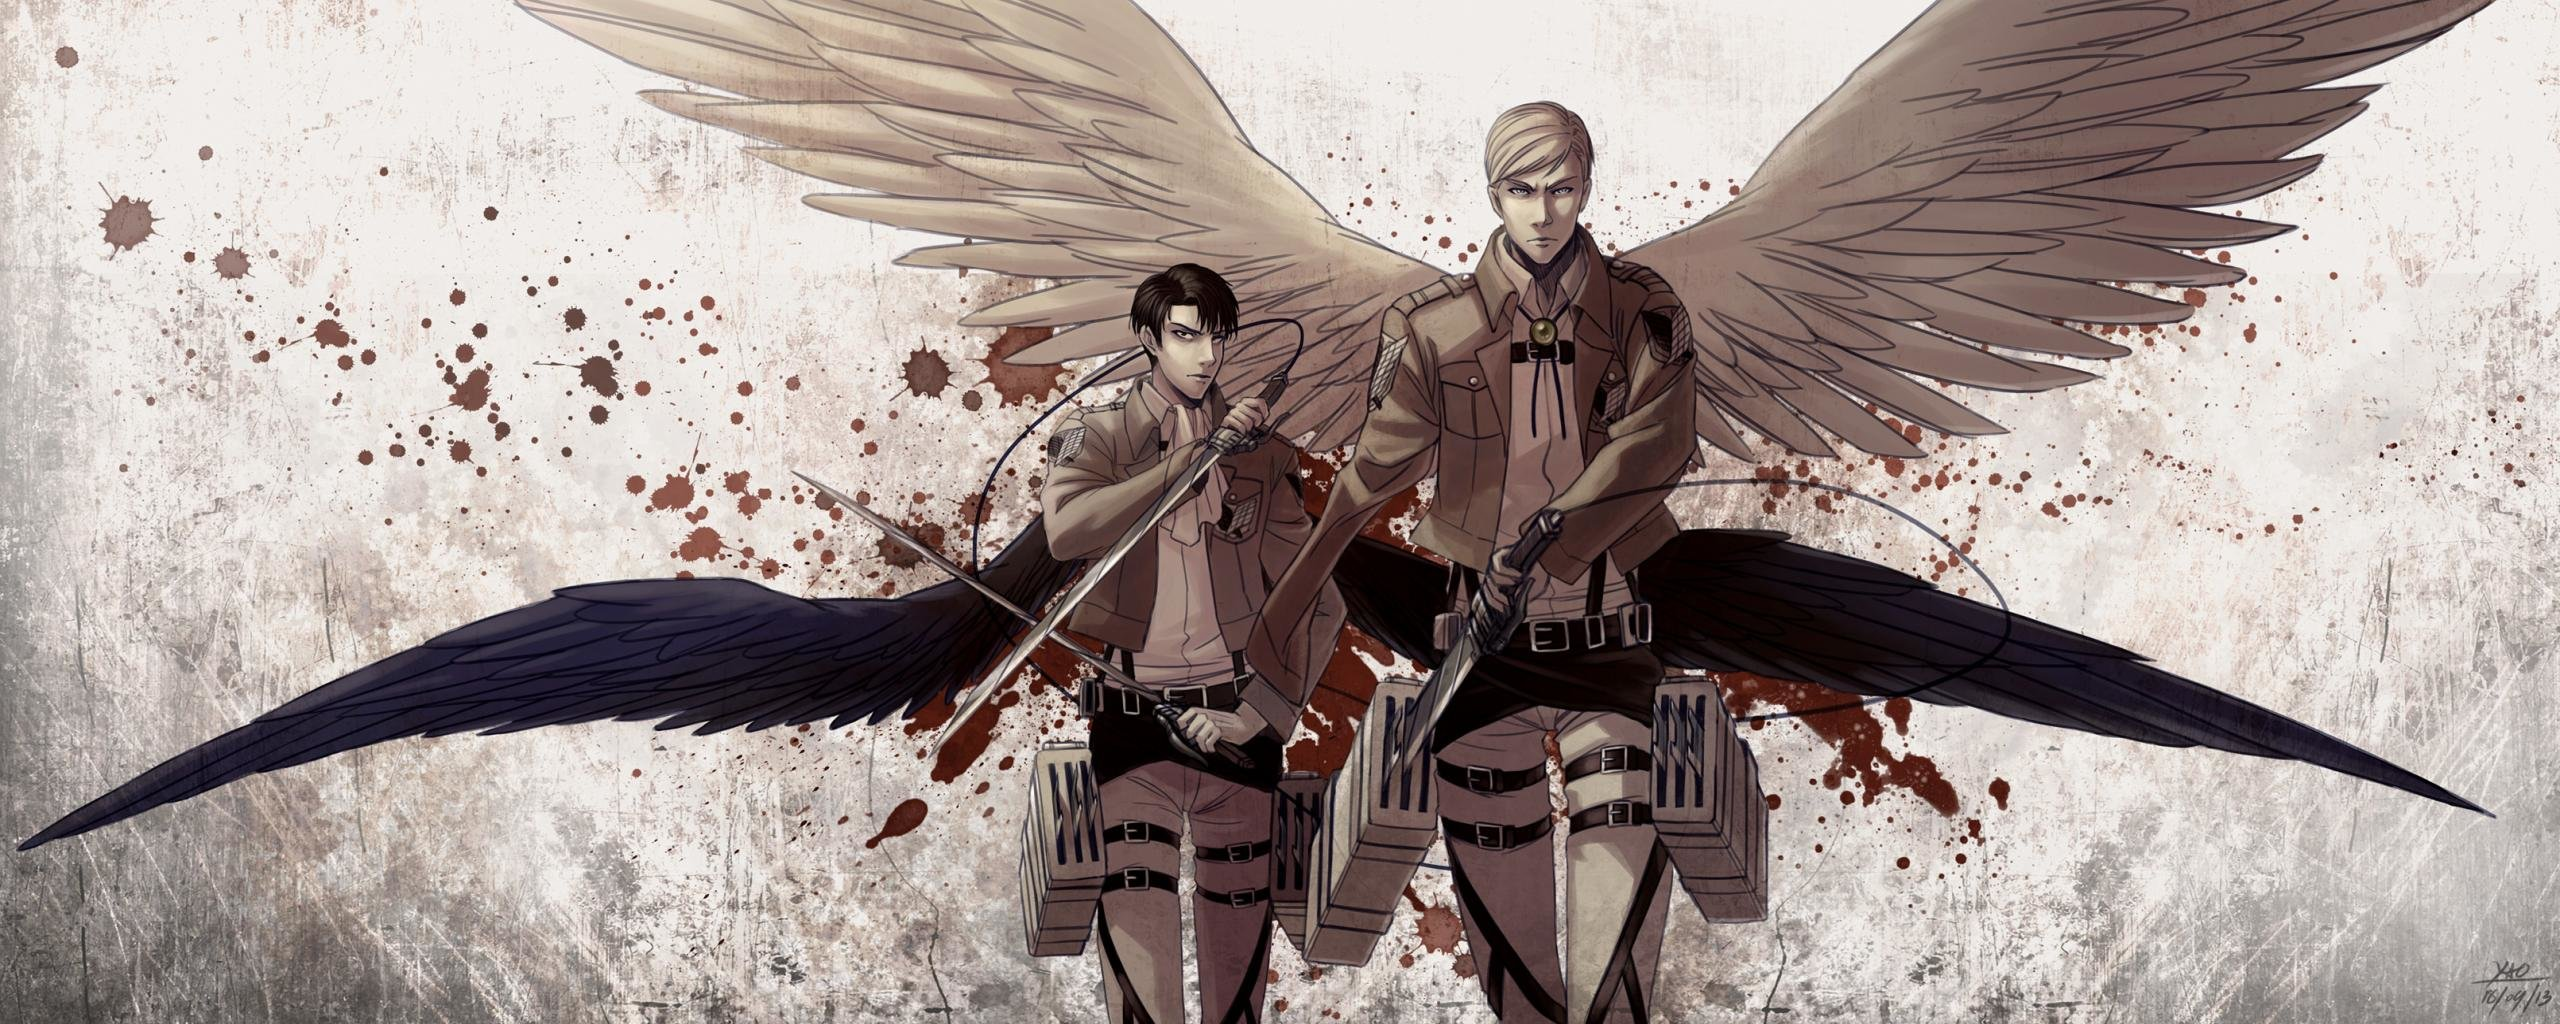 Dual Monitor Attack On Titan Wallpapers Hd Backgrounds